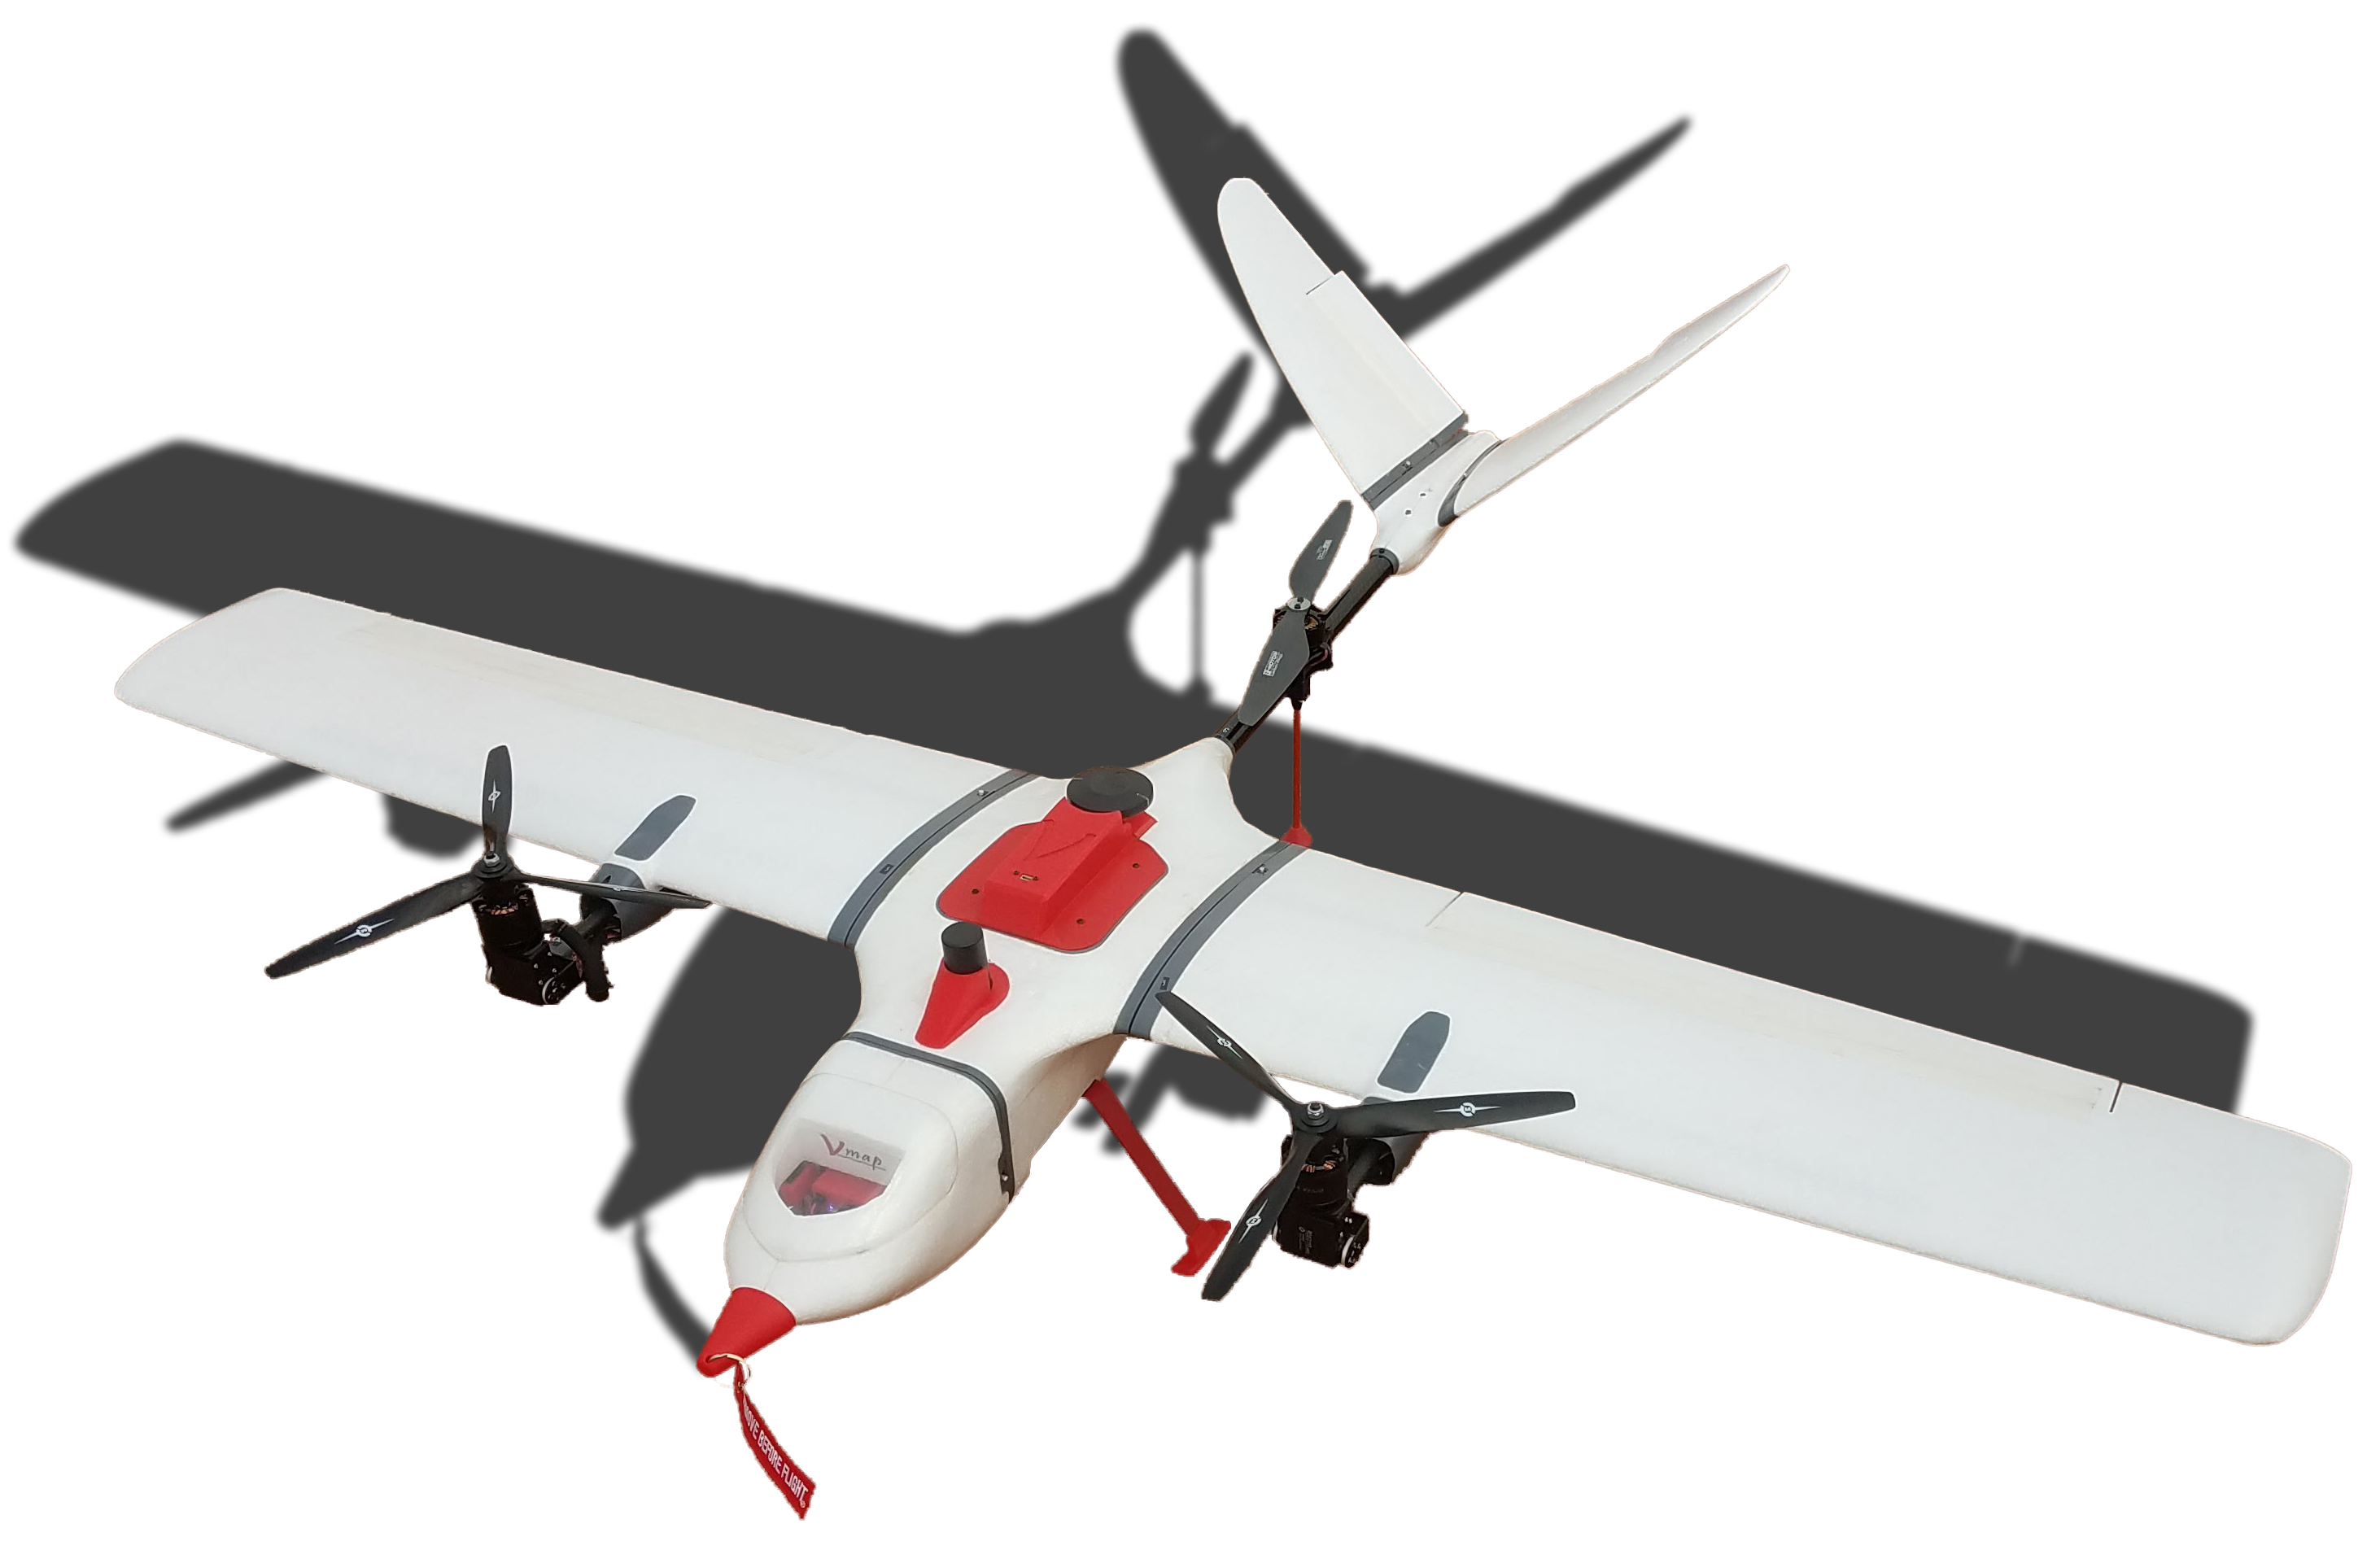 MAP-TM3 VTOL Fixed Wing